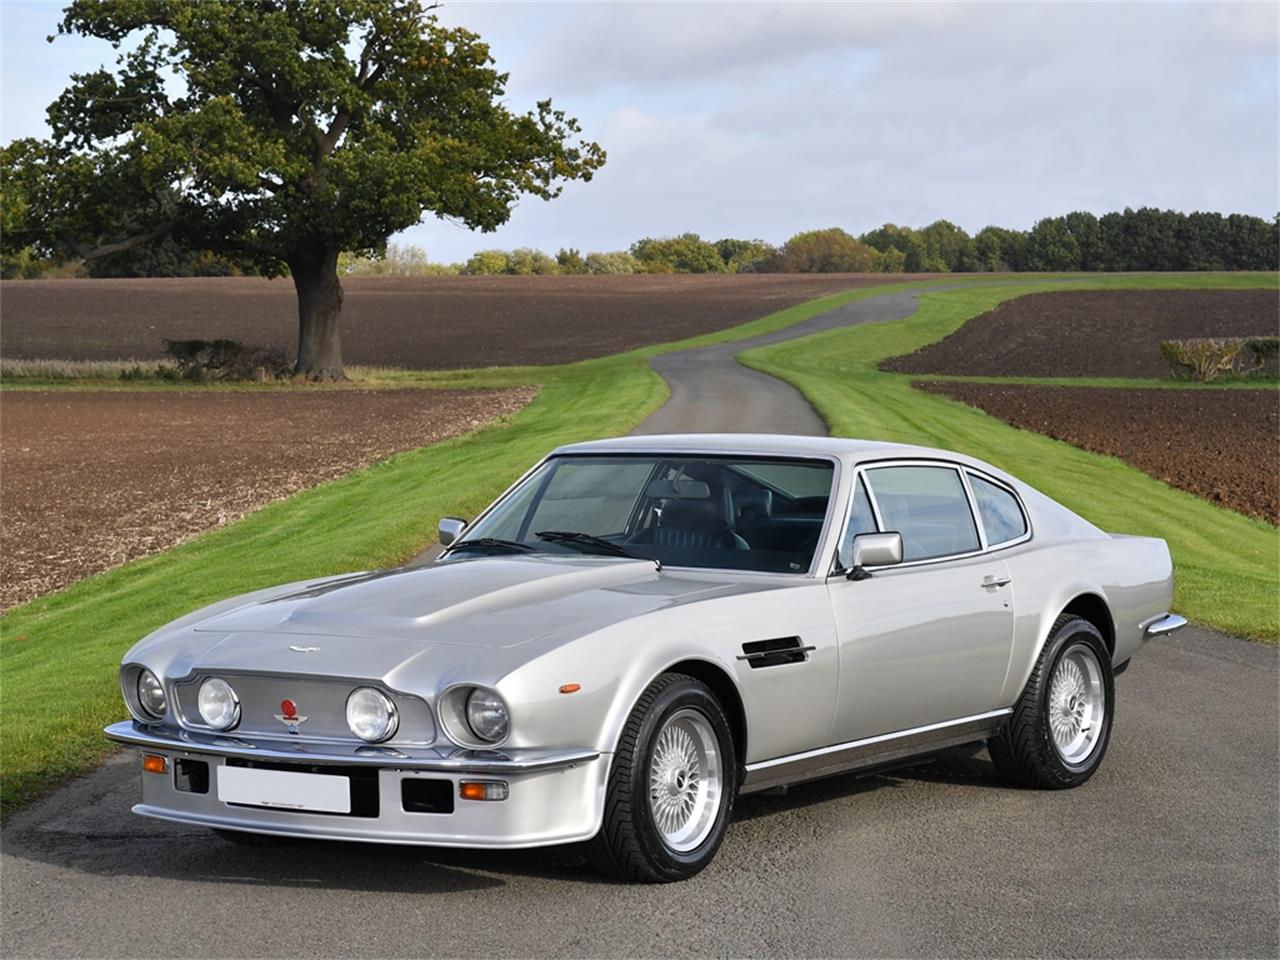 1985 Aston Martin V8 Vantage X Pack Factory Prototype Development